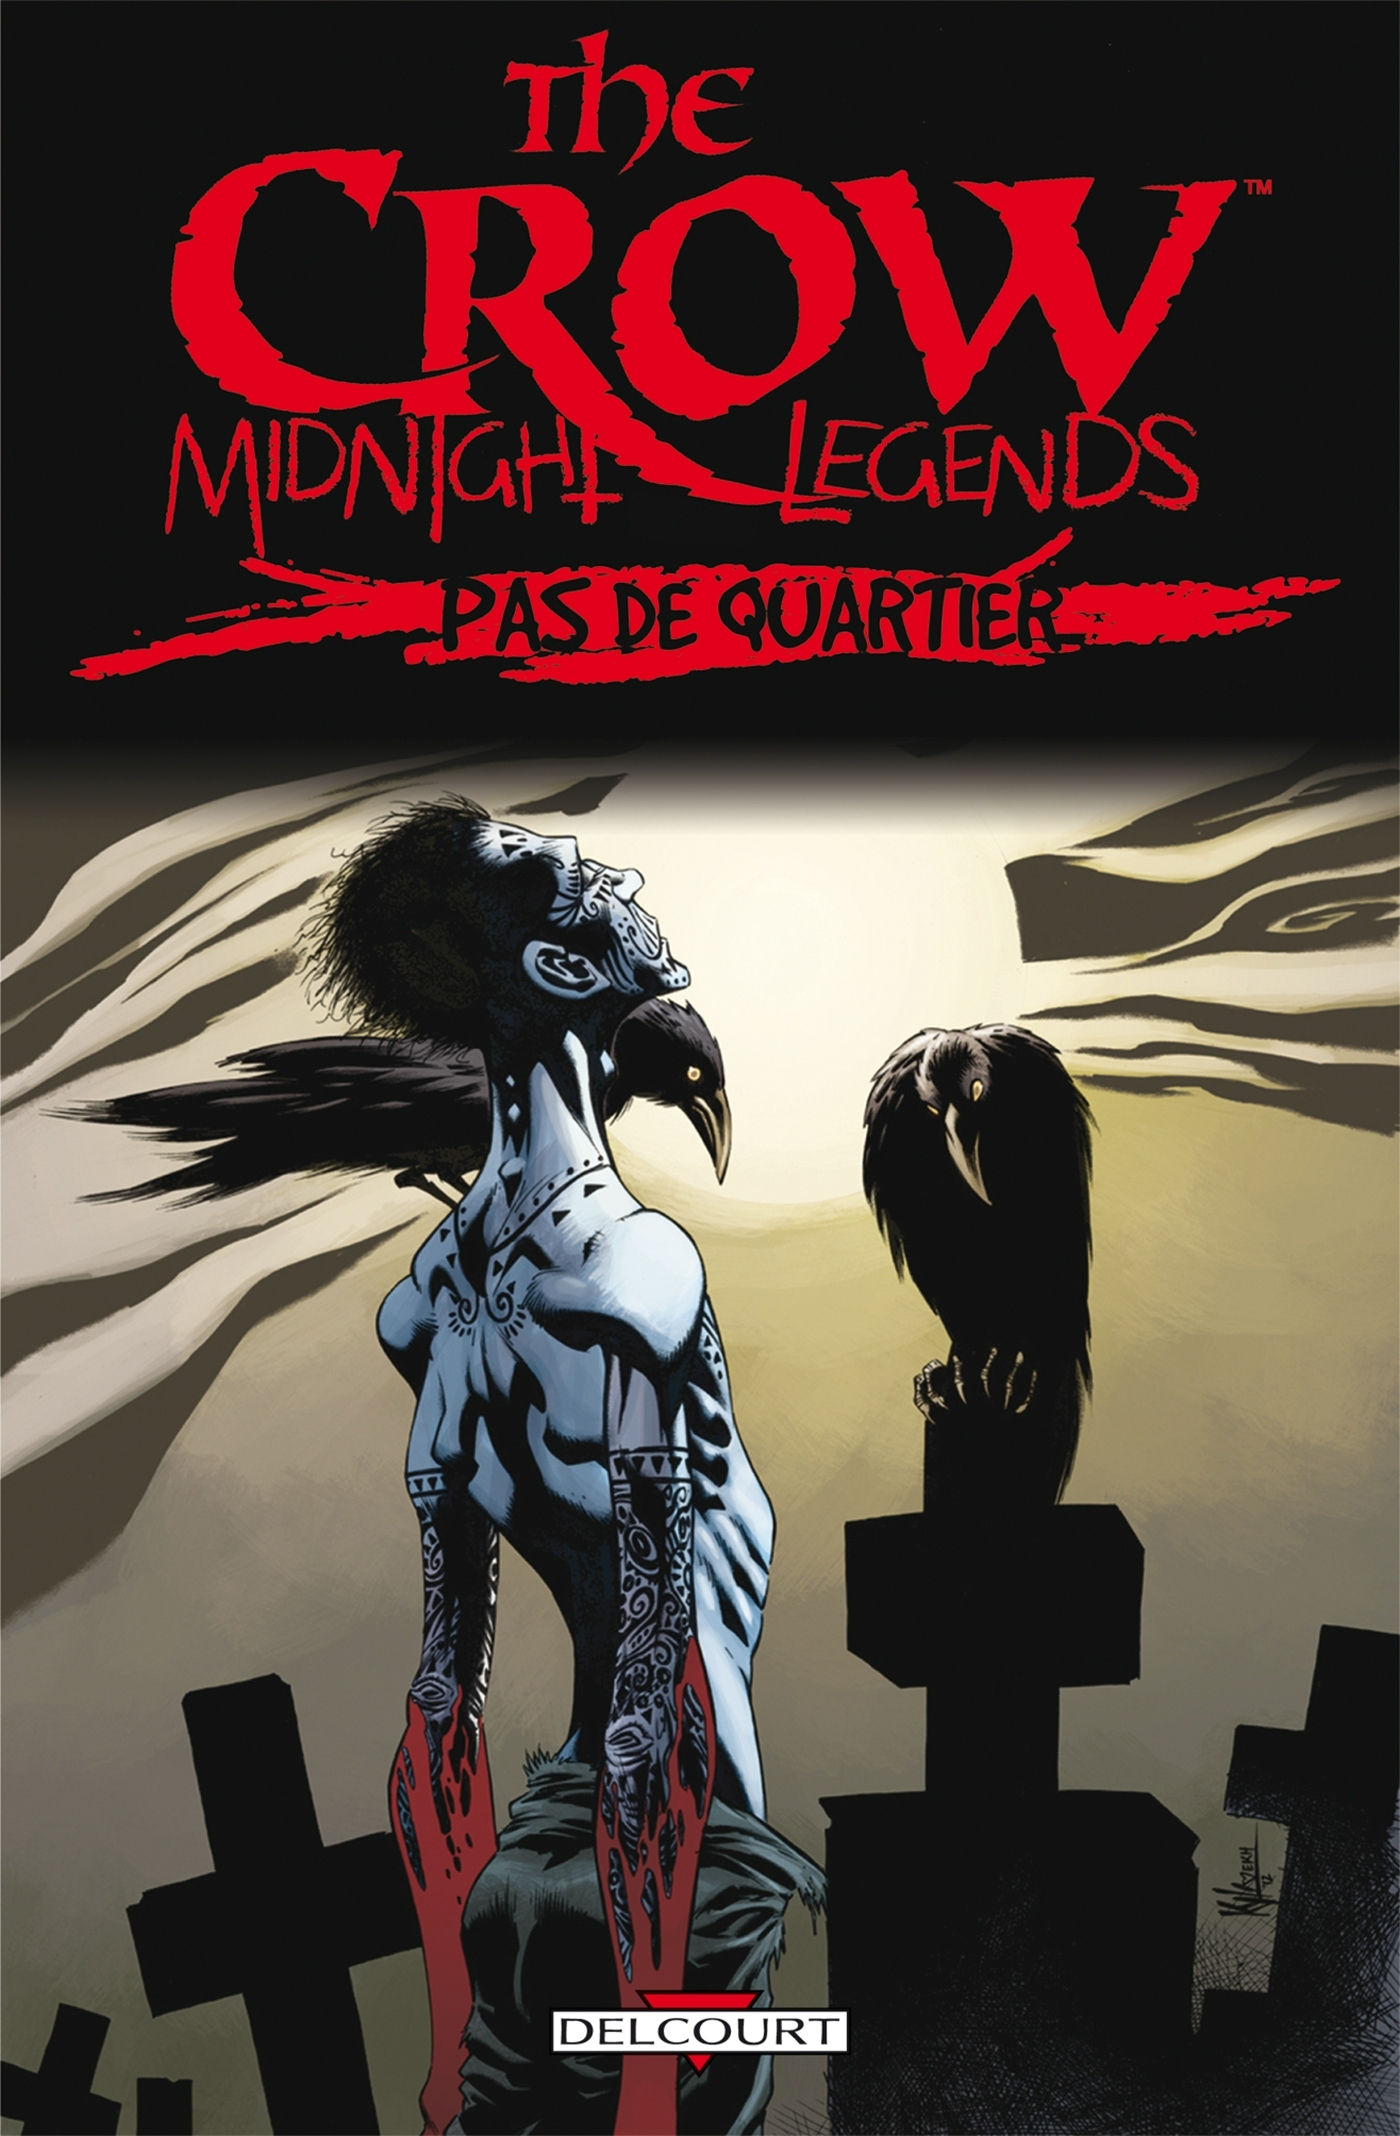 THE CROW - MIDNIGHT LEGENDS T1 - PAS DE QUARTIER